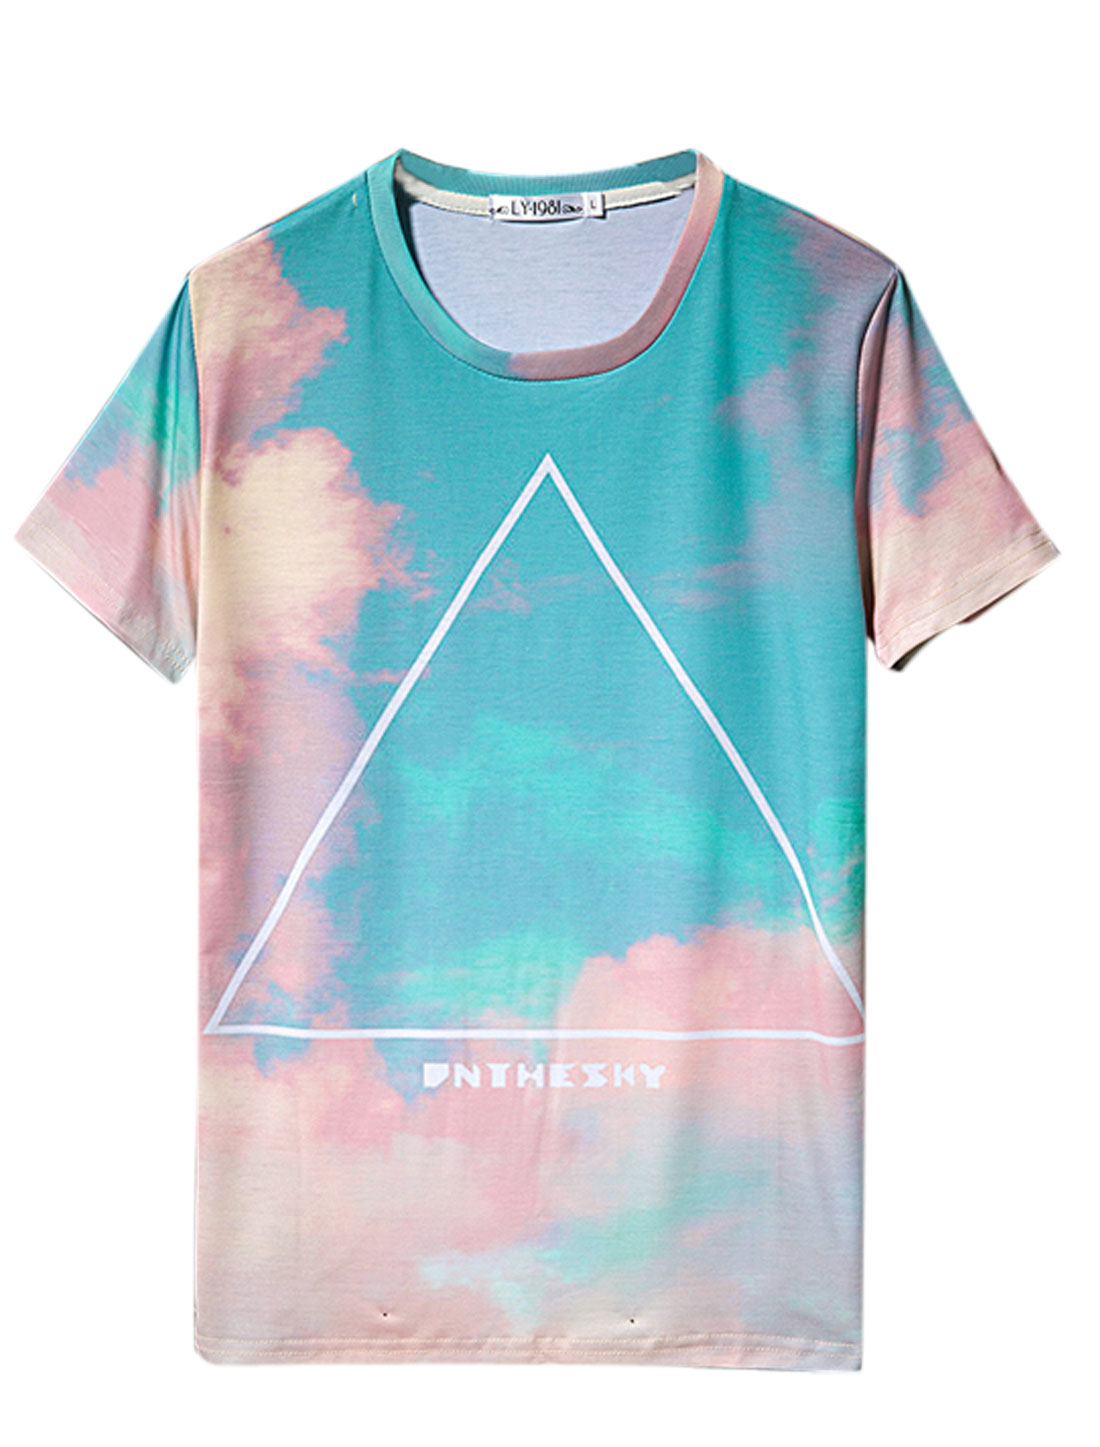 Man's Round Neck Short Sleeve Triangle Sky Print Tee Shirt Multicolor M